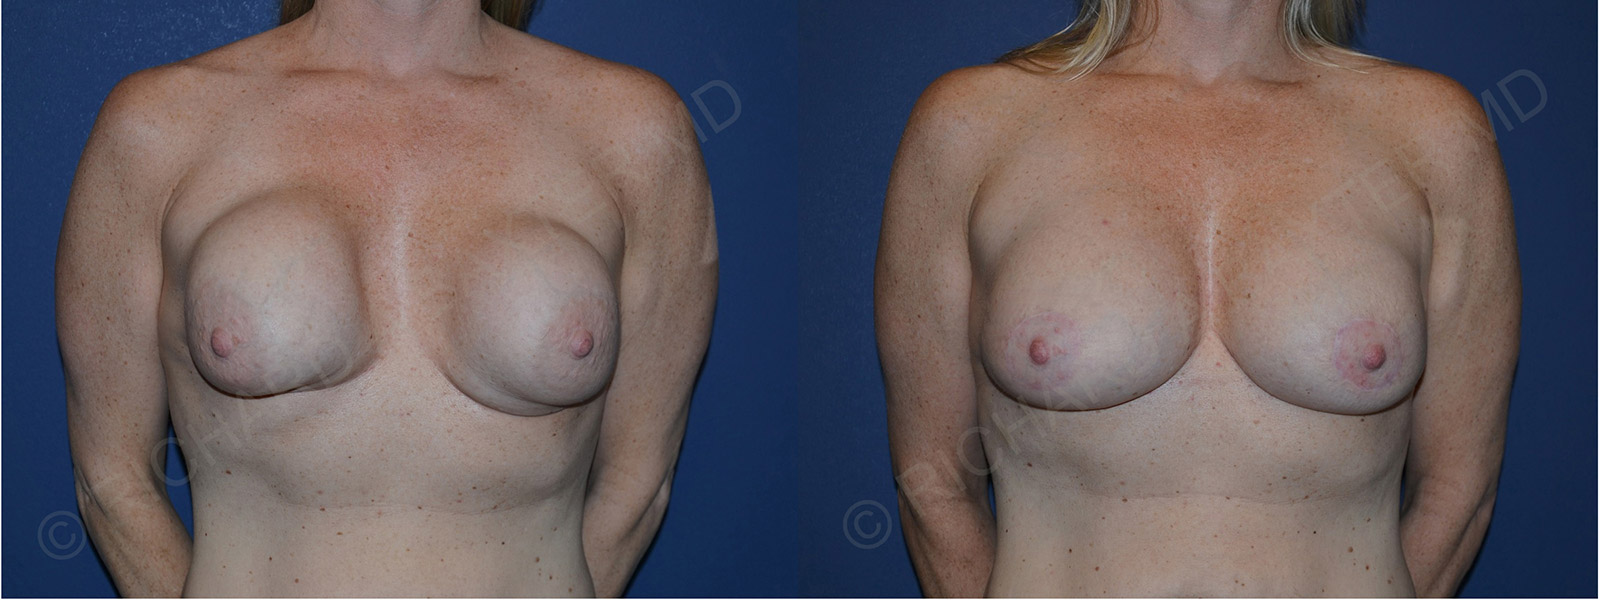 before and after capsular contracture